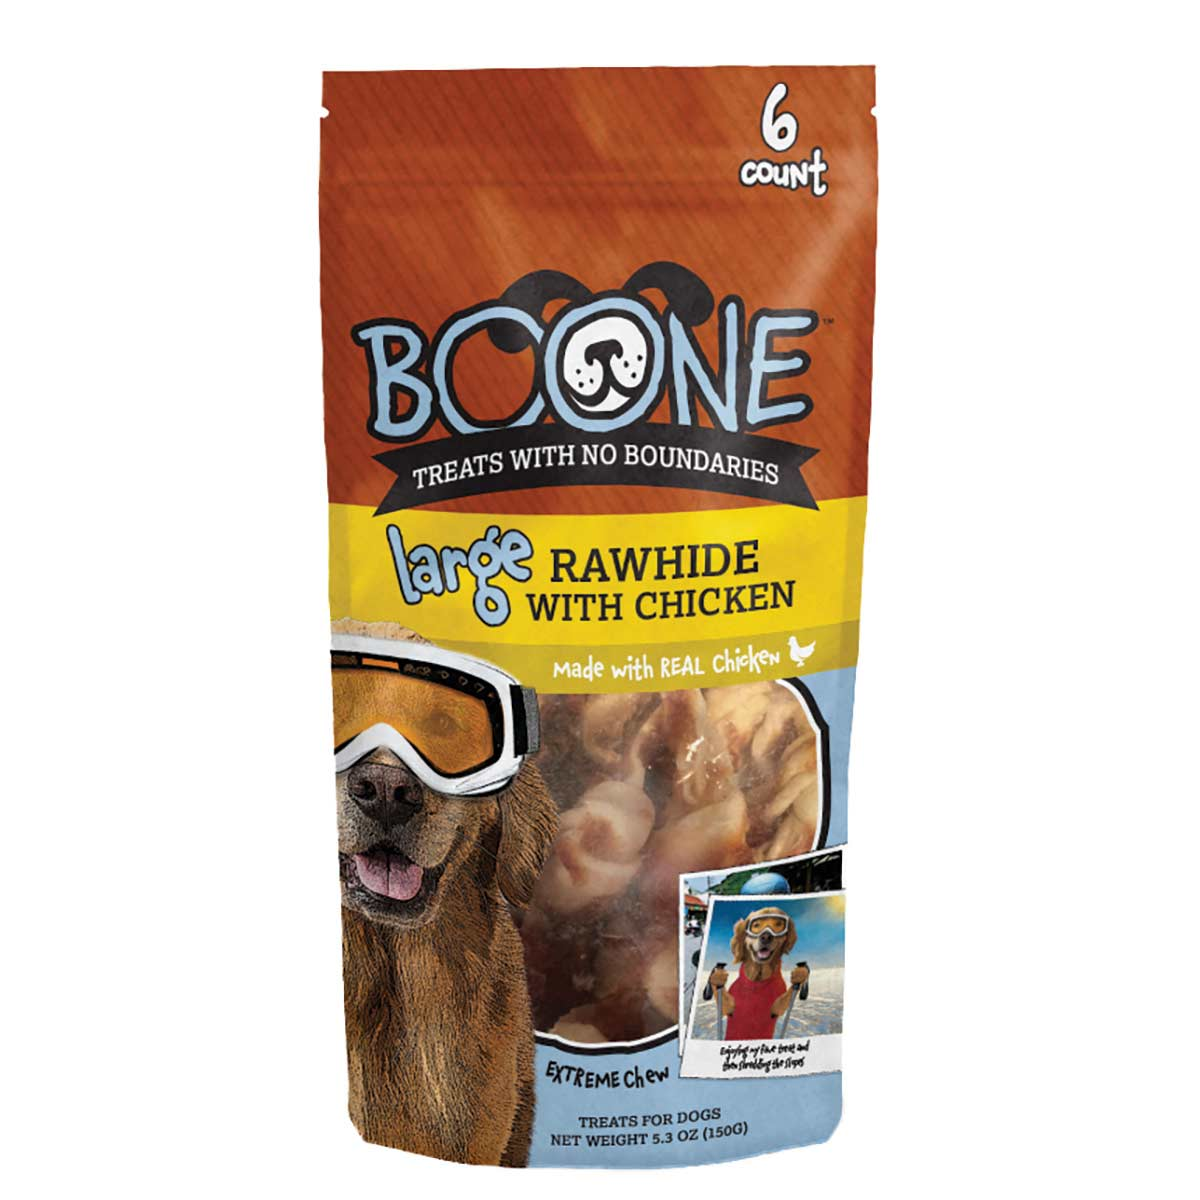 Large 6 Pack Boone Rawhide with Chicken